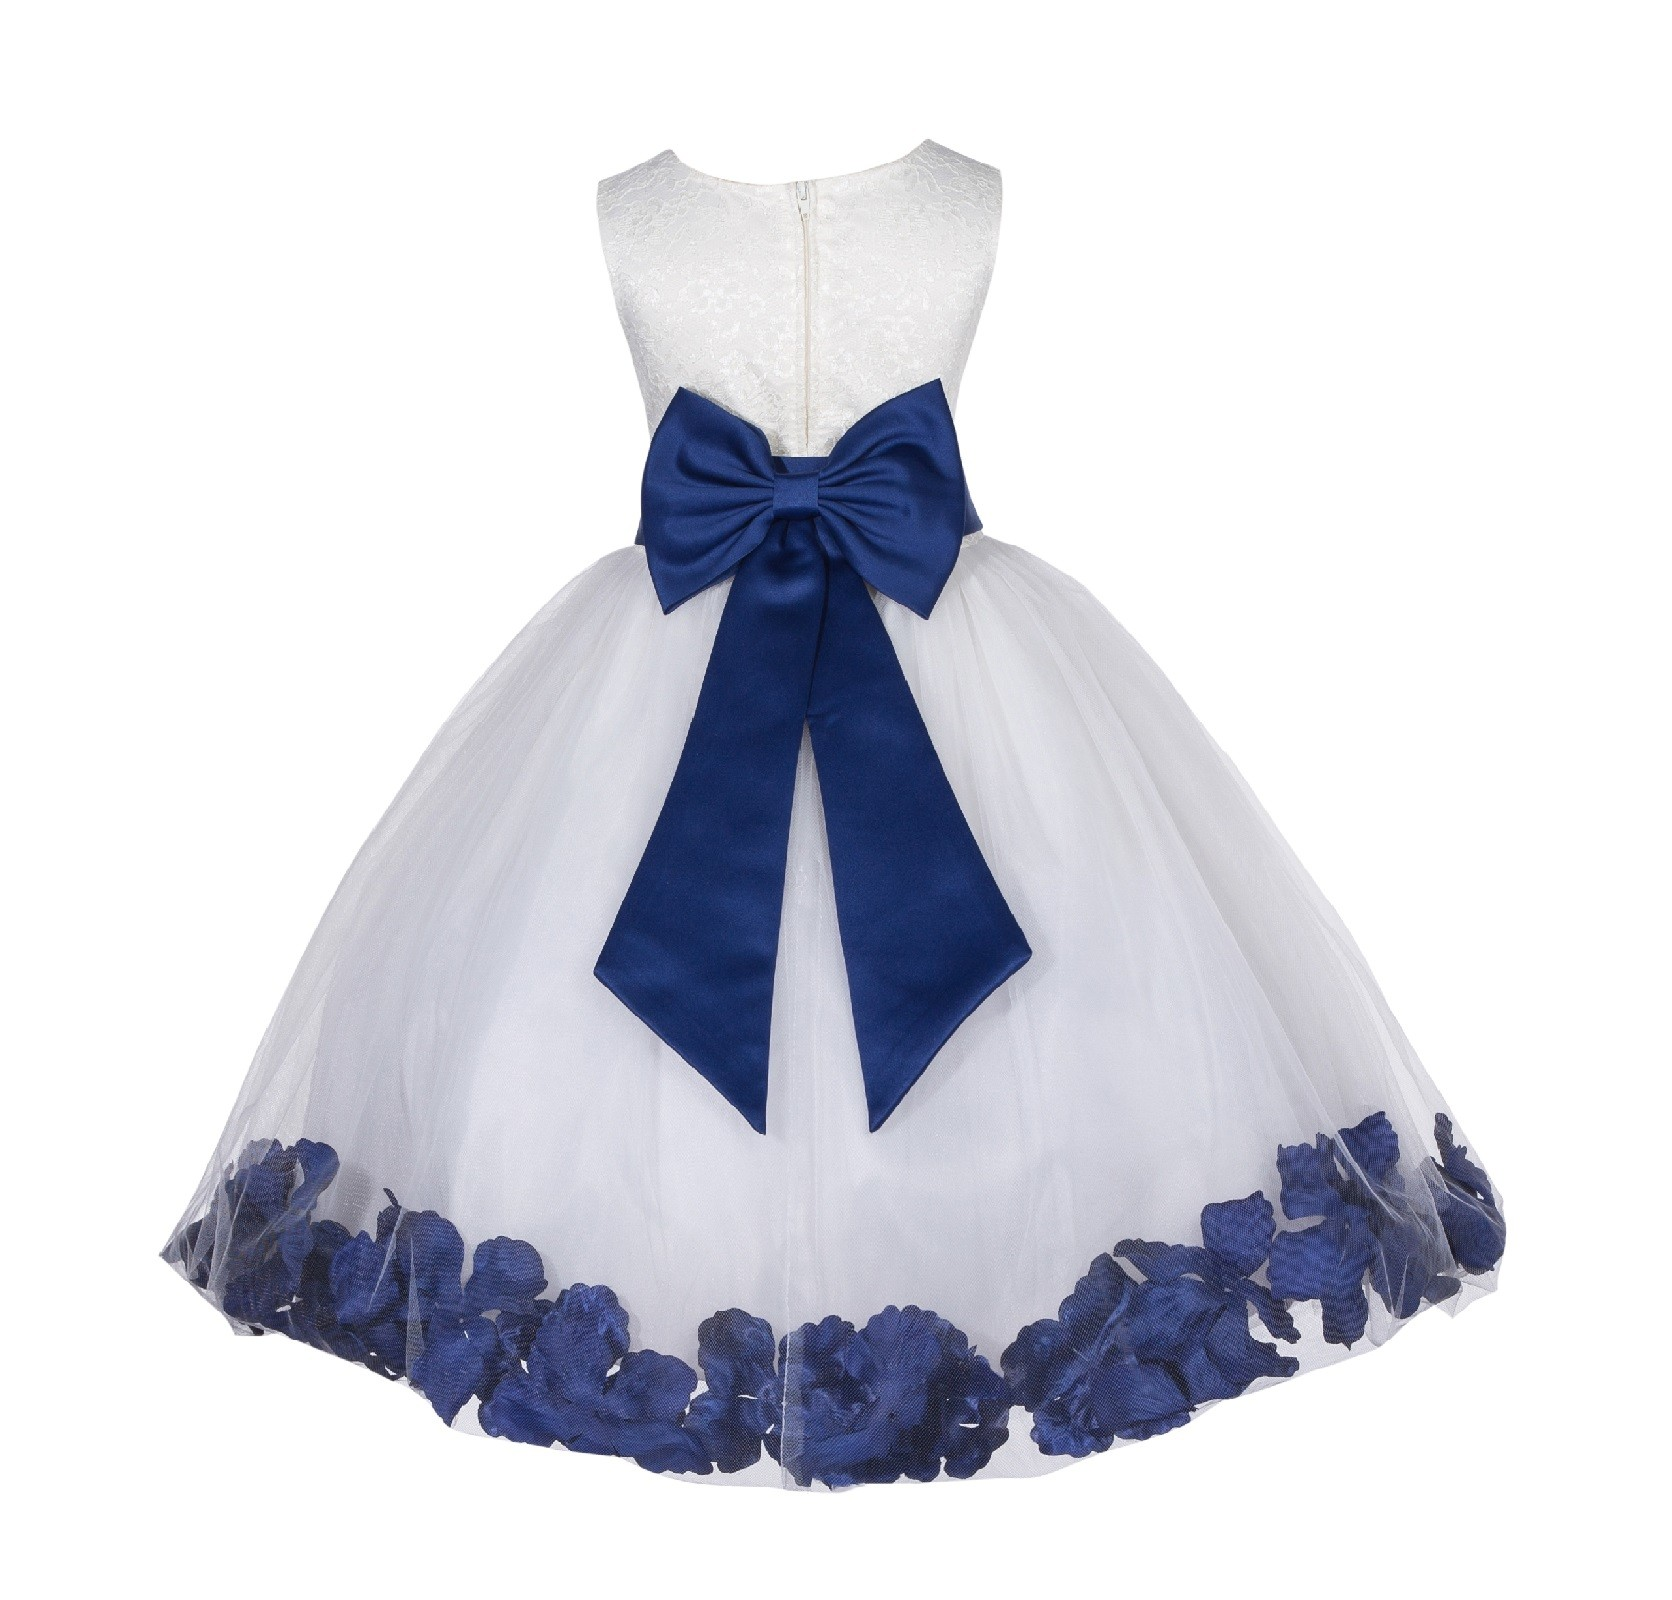 Ivorynavy Lace Top Floral Petals Ivory Flower Girl Dress 165t